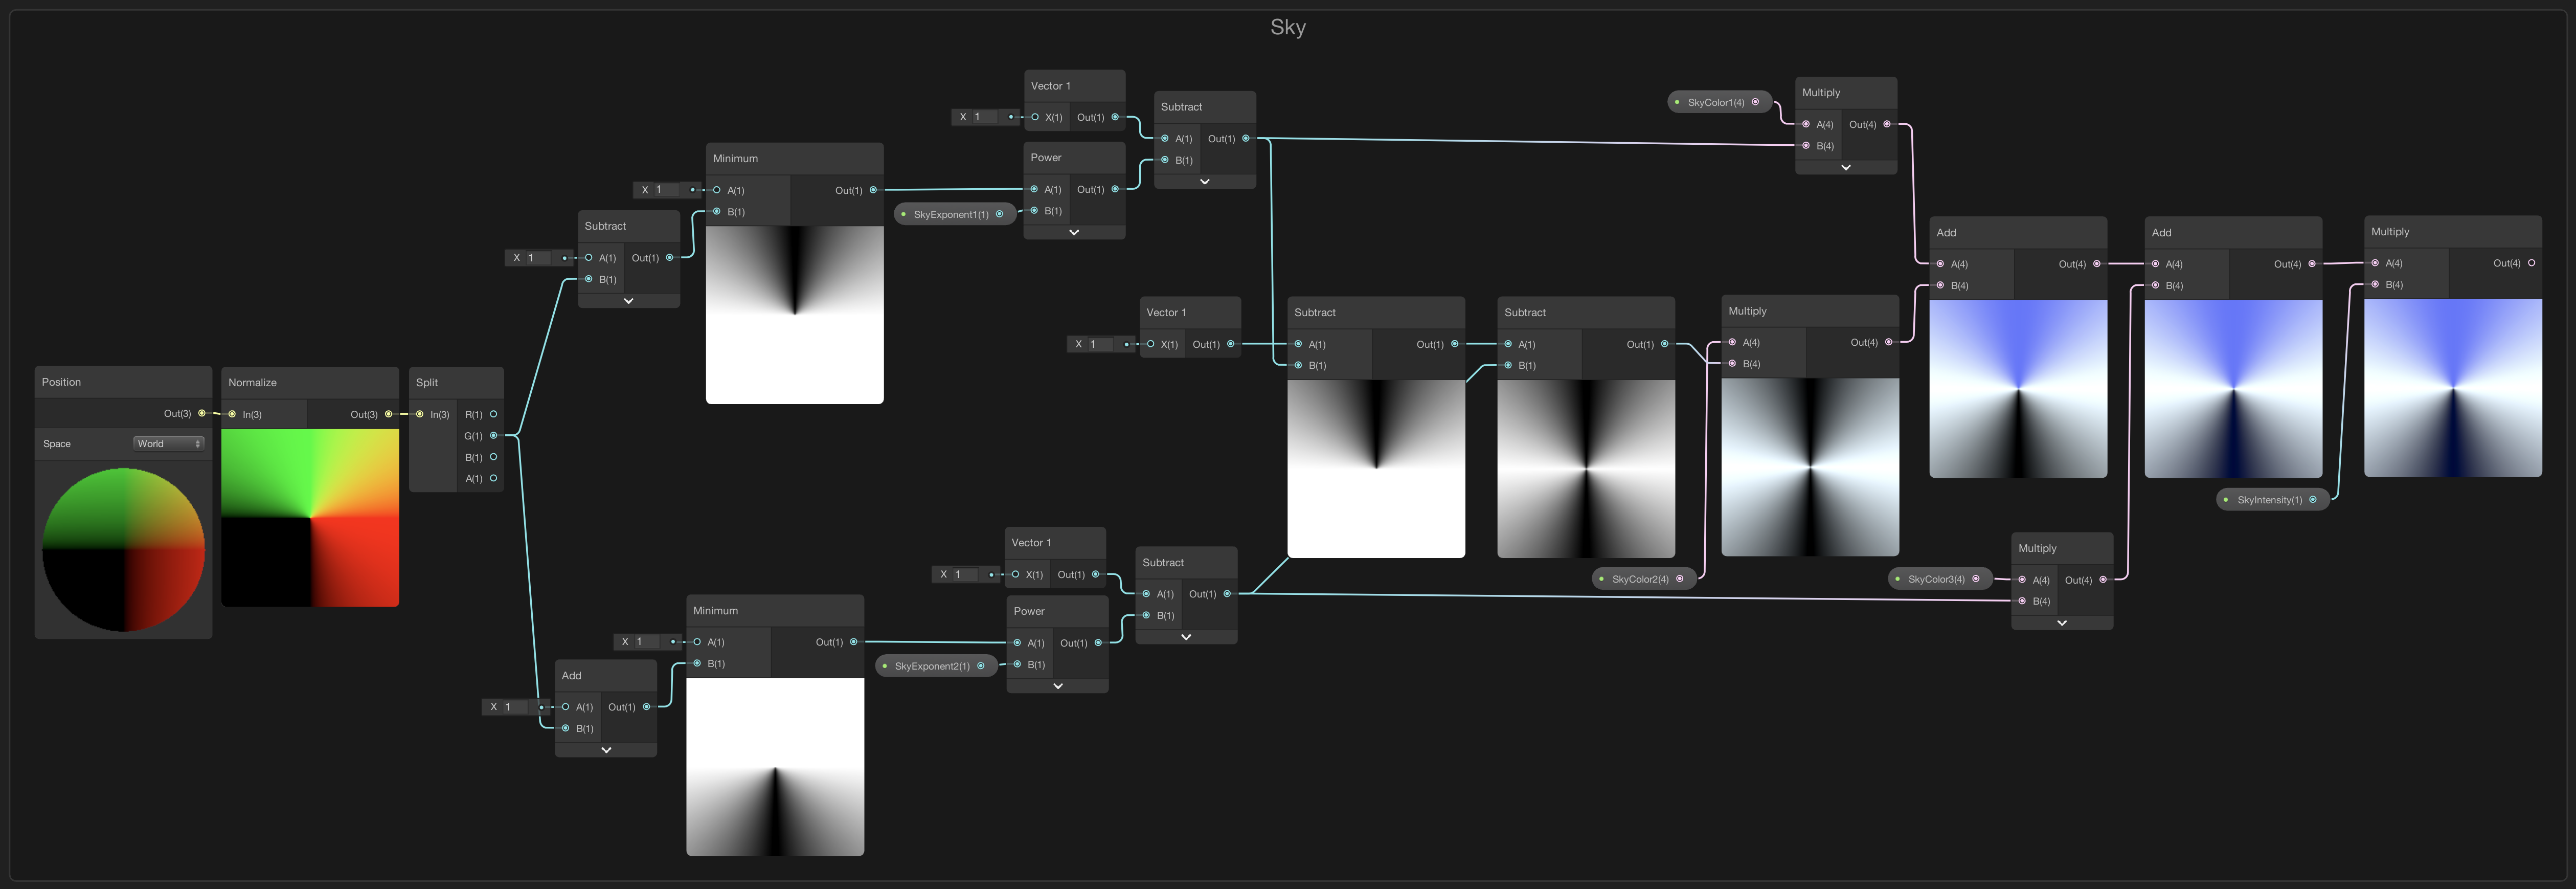 Image of a shader graph skybox node setup that creates a gradient in the sky from three color properties.